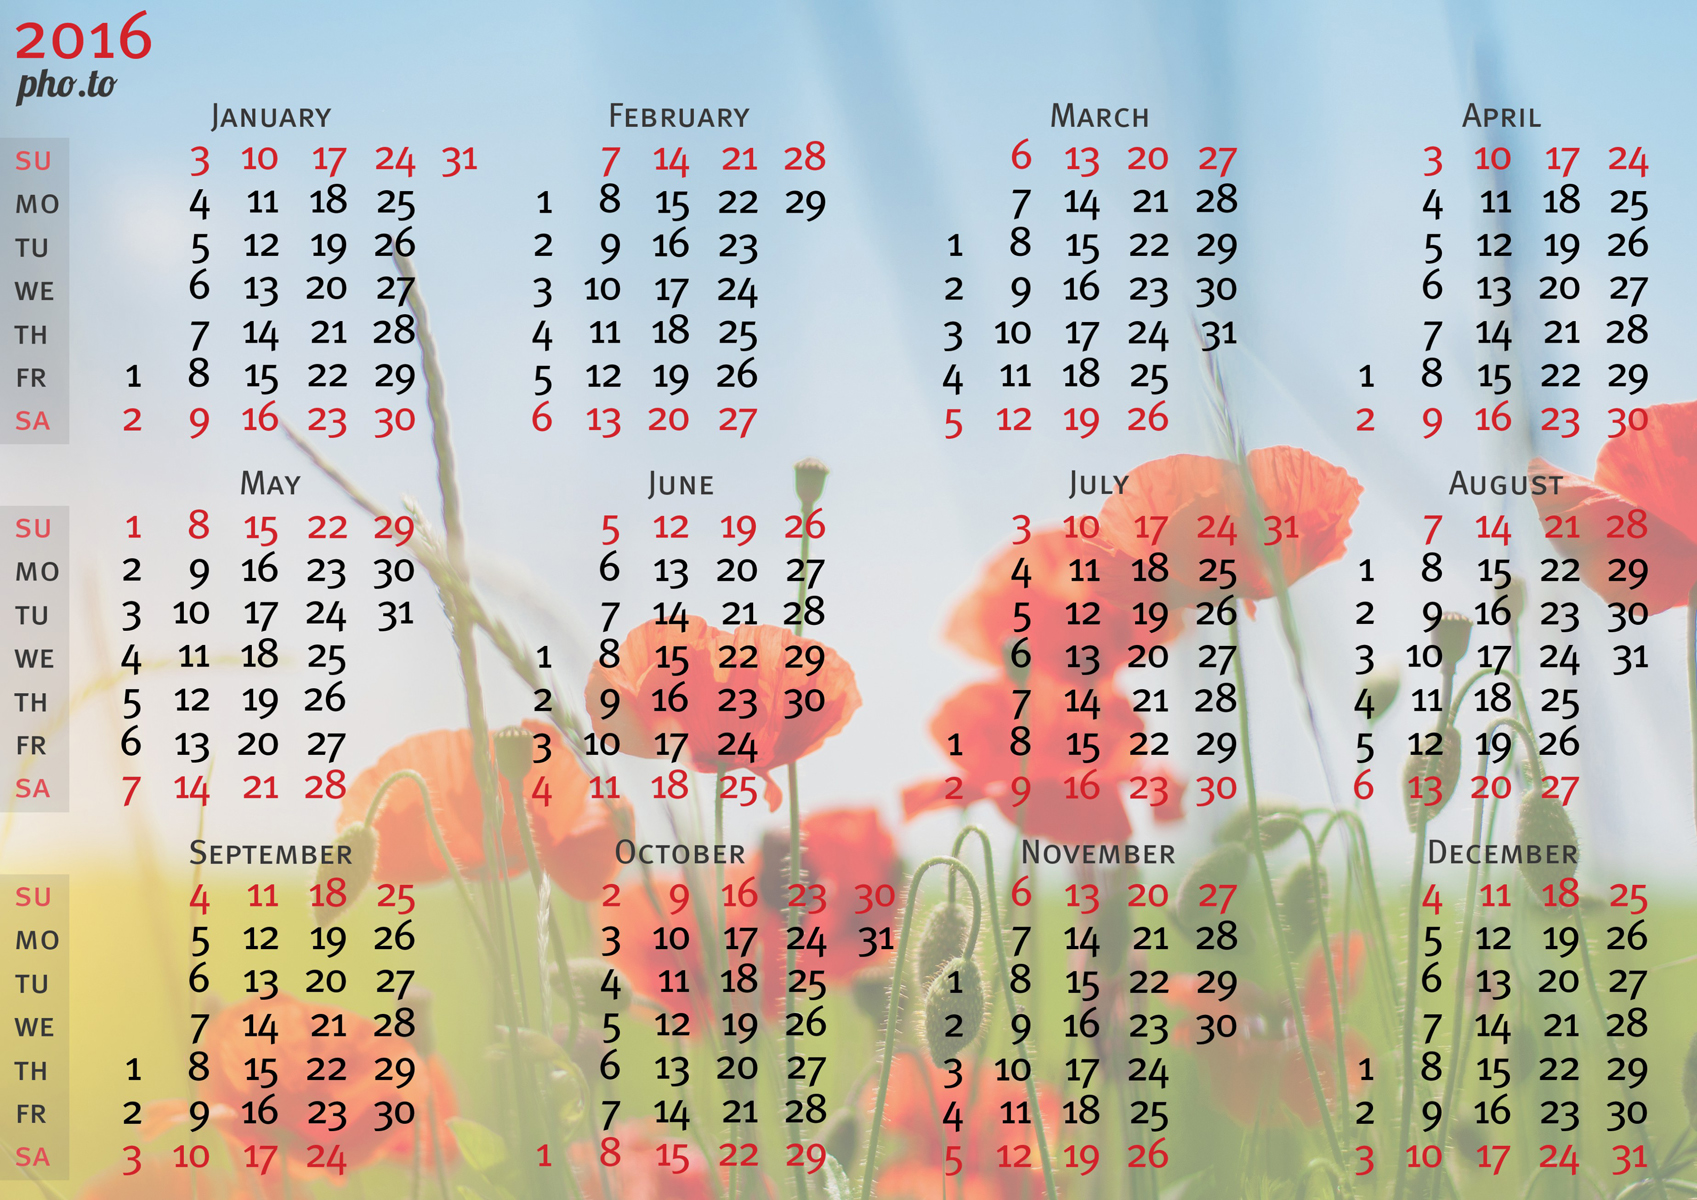 Lovely poppy flowers' photo was used to  design this personalised photo calendar.